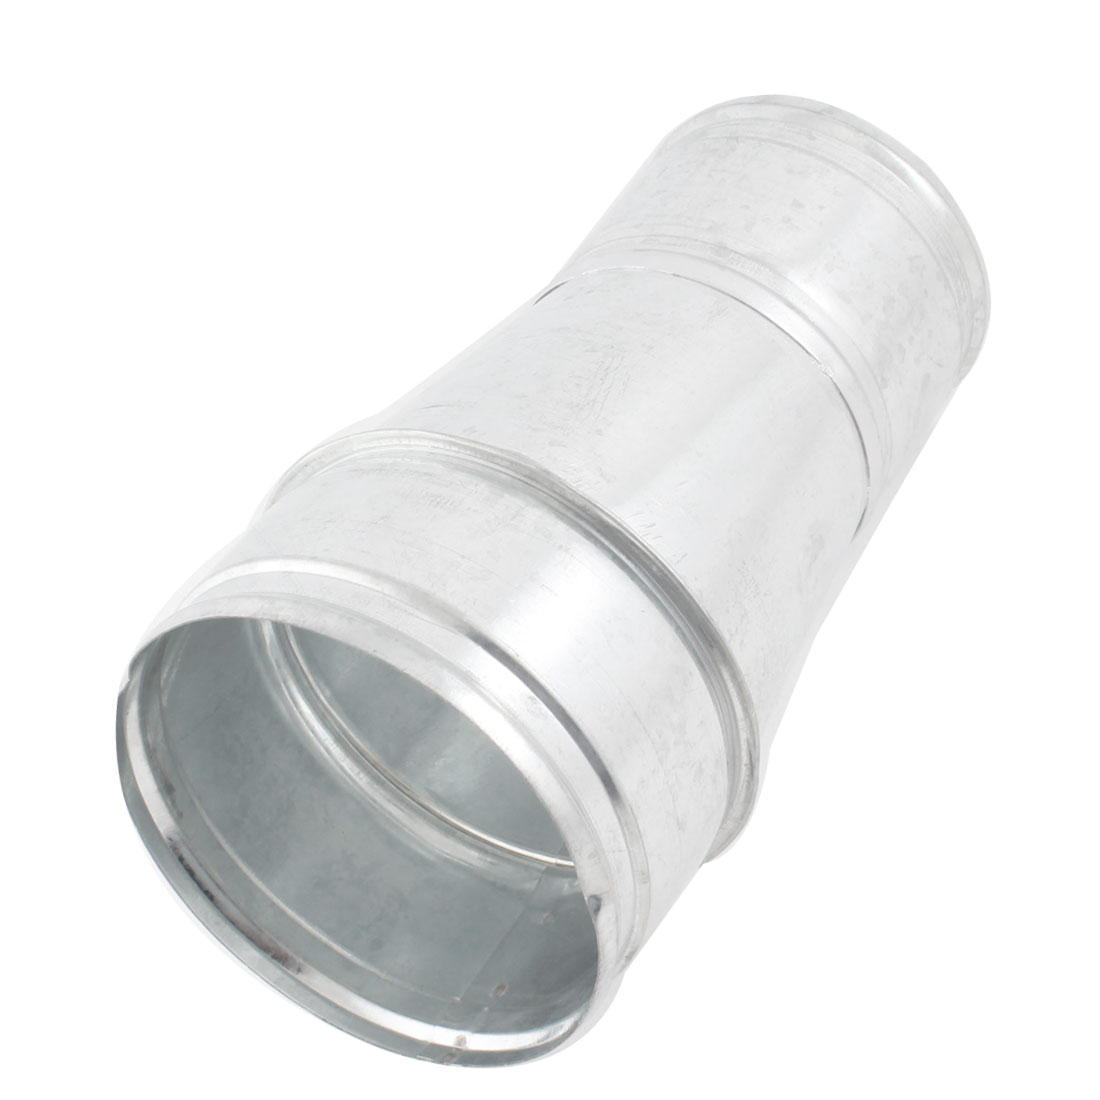 125mm to 100mm 2 Way Straight Outlet Air Vent Joint Adapter Connector for Ventilation Ducting